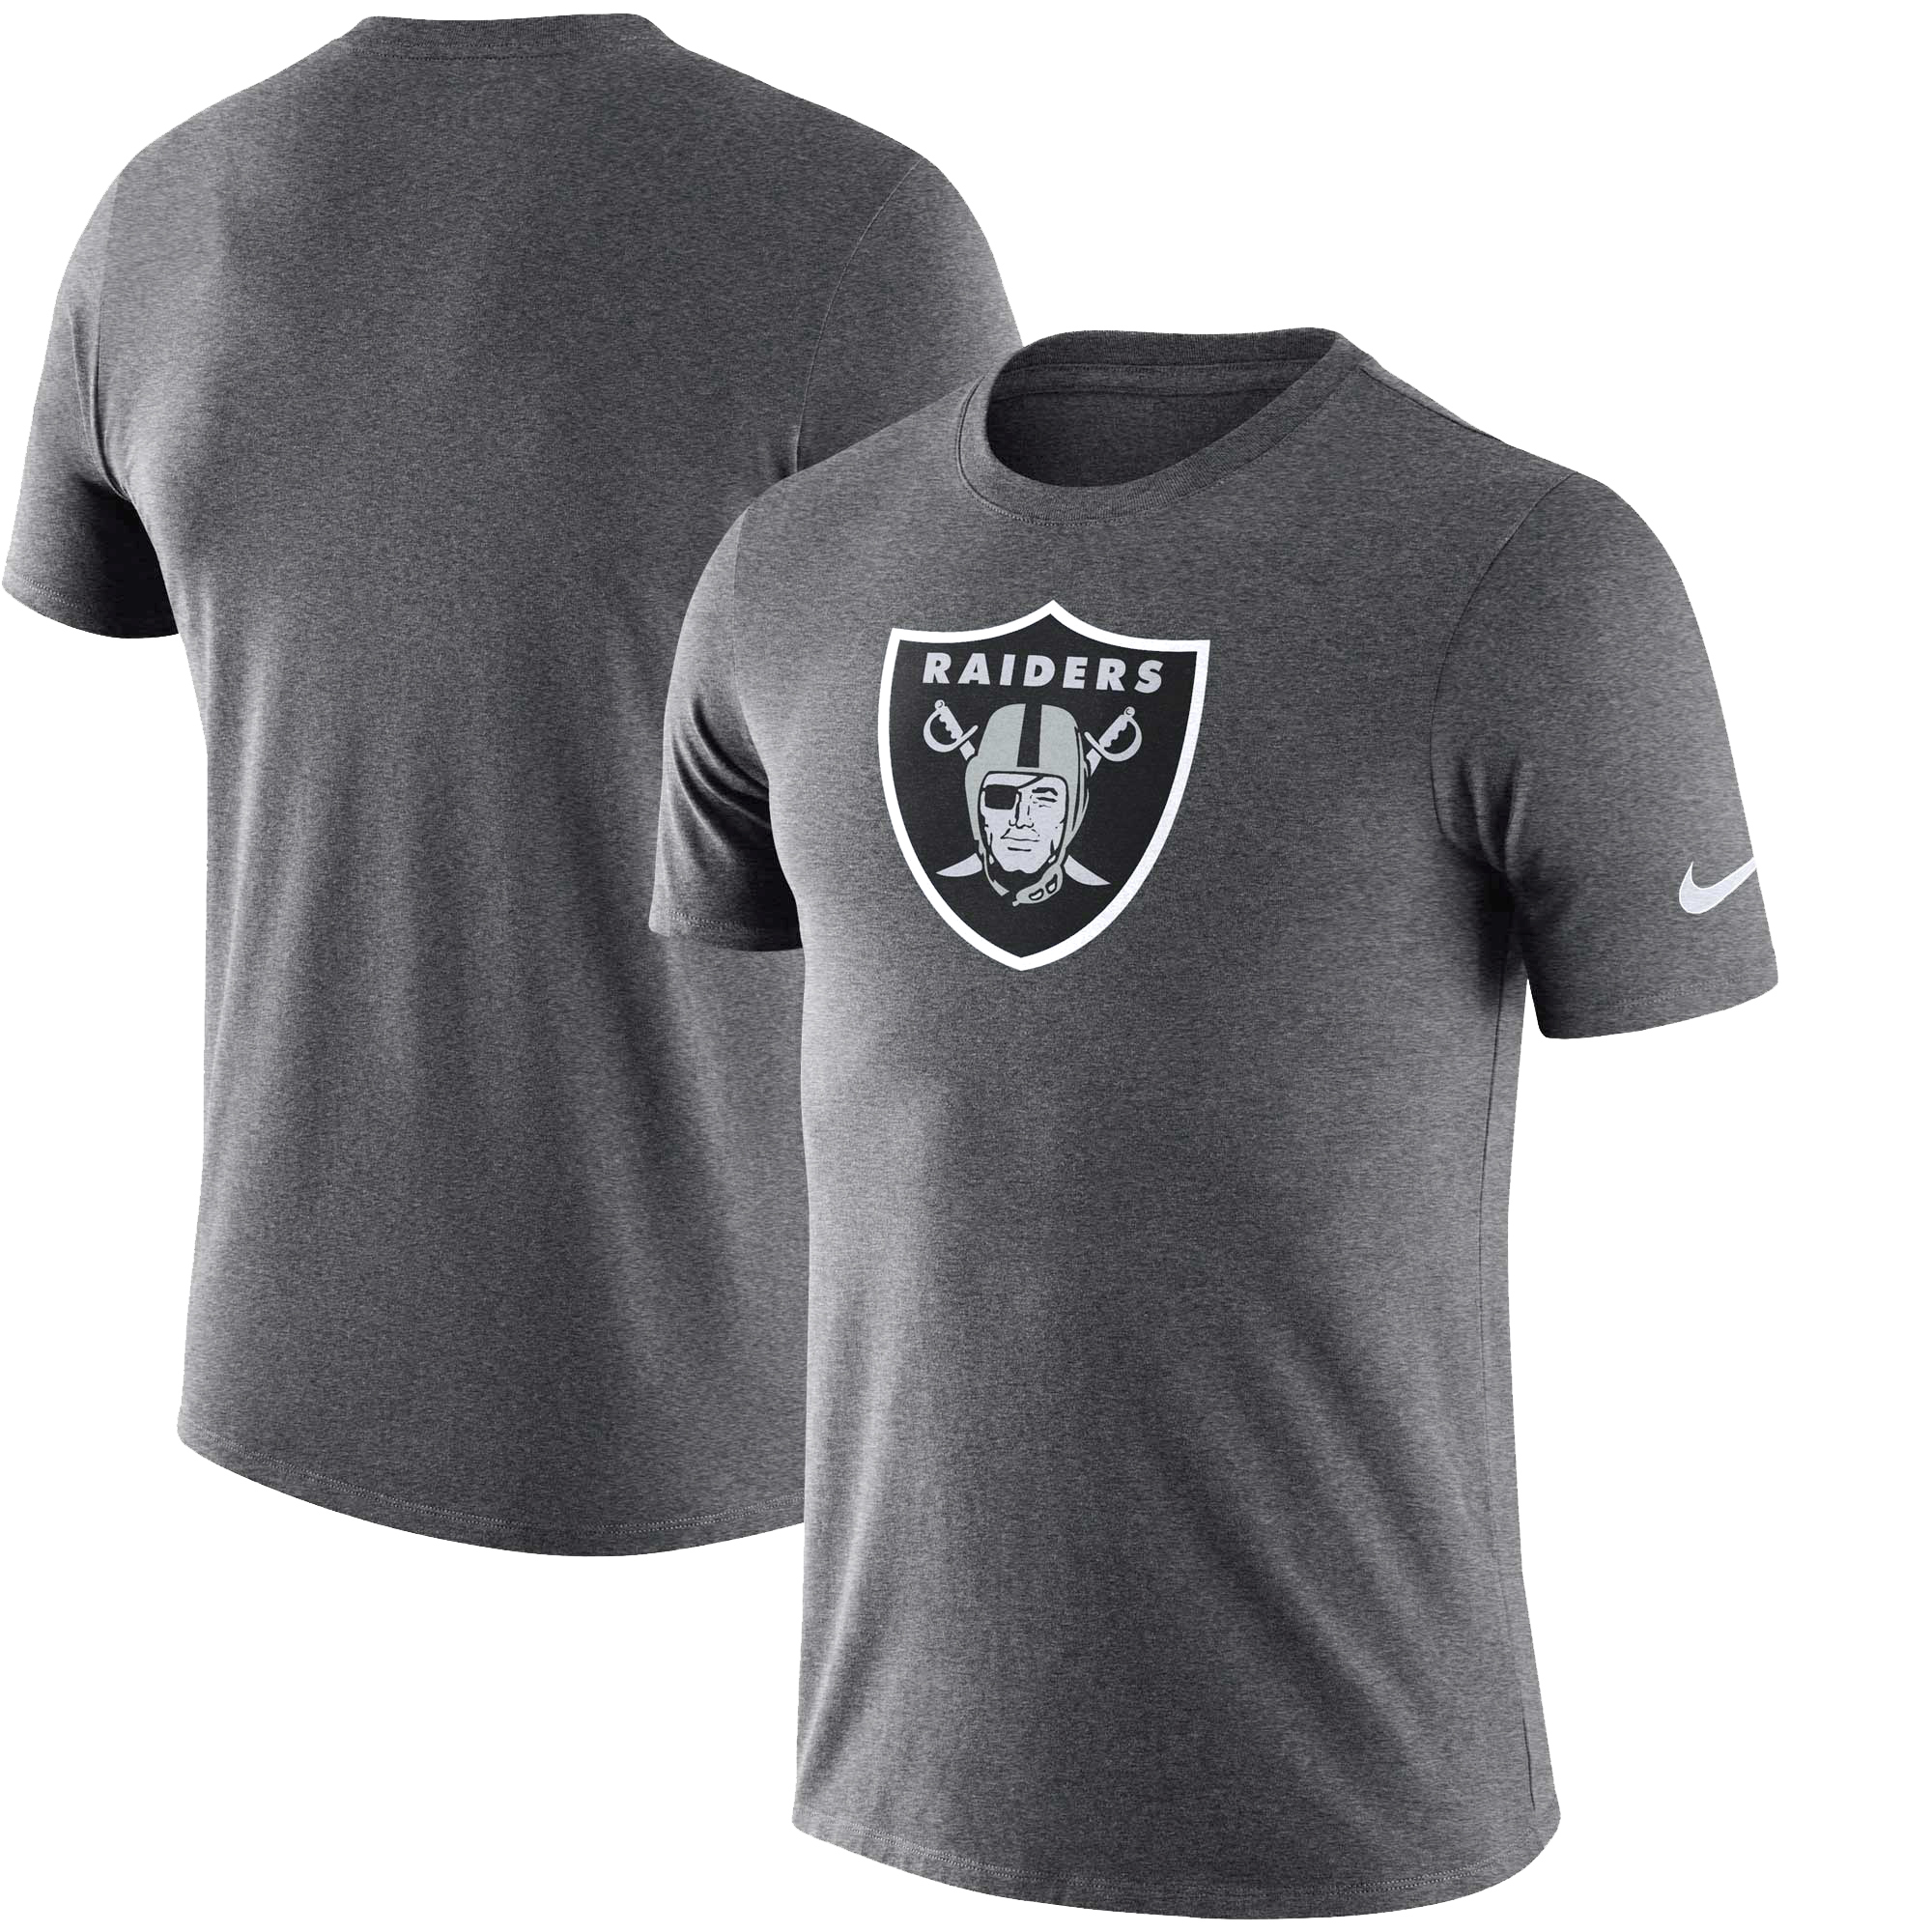 Oakland Raiders Nike Essential Logo Dri-FIT Cotton T-Shirt - Heather Charcoal